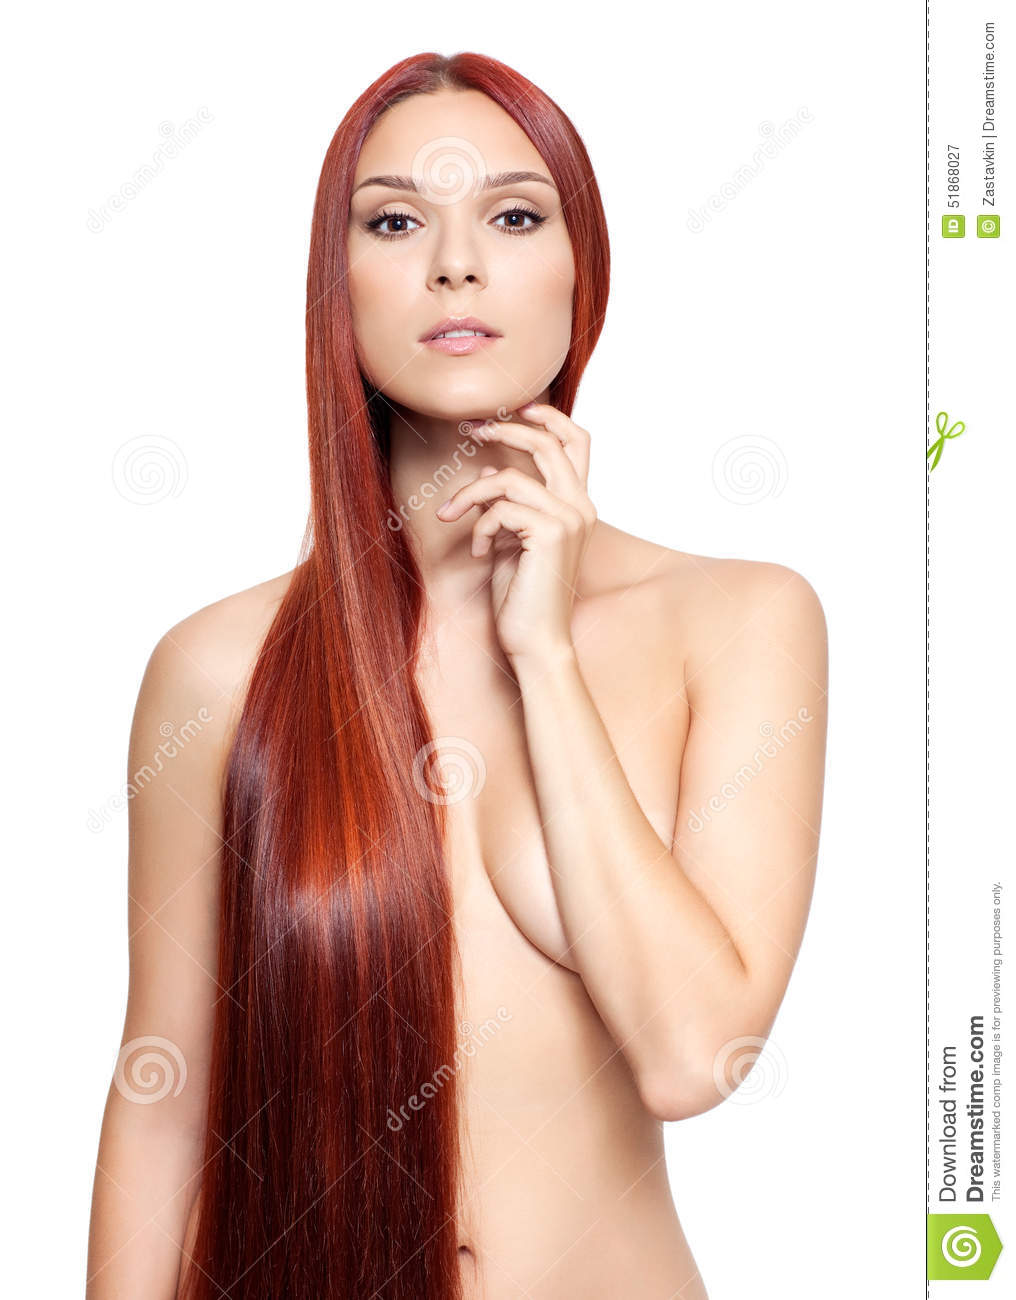 Naked head women red beutifull